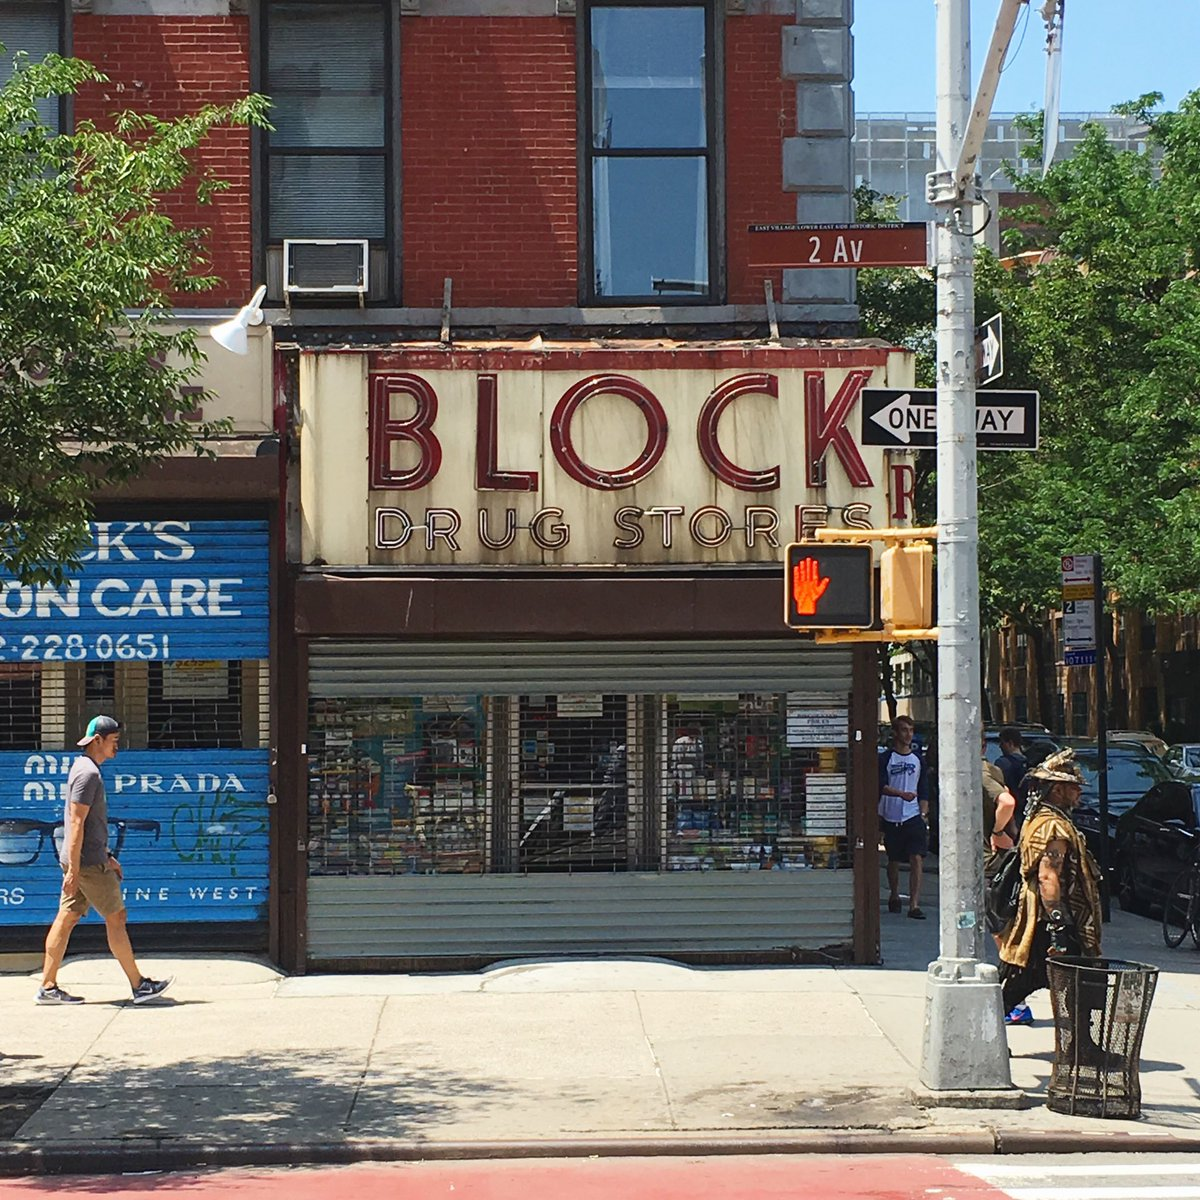 Block Drug Store in New York for #fontsunday @DesignMuseum . #signage #typography #fonts #design #architecture #neon